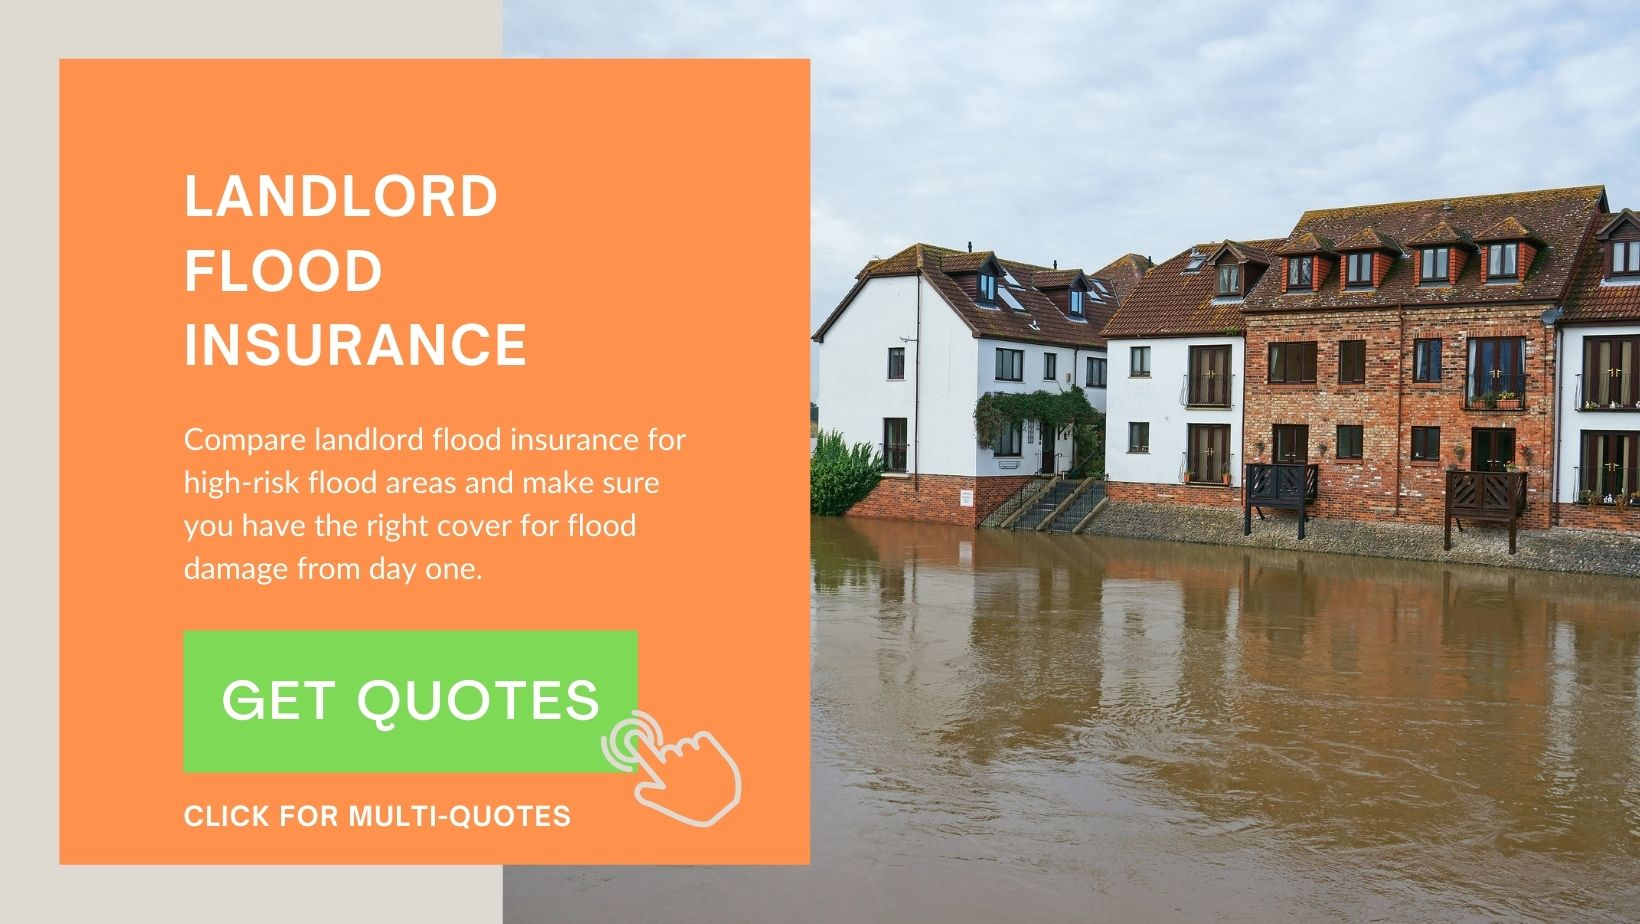 COMPARE FLOOD INSURANCE QUOTES